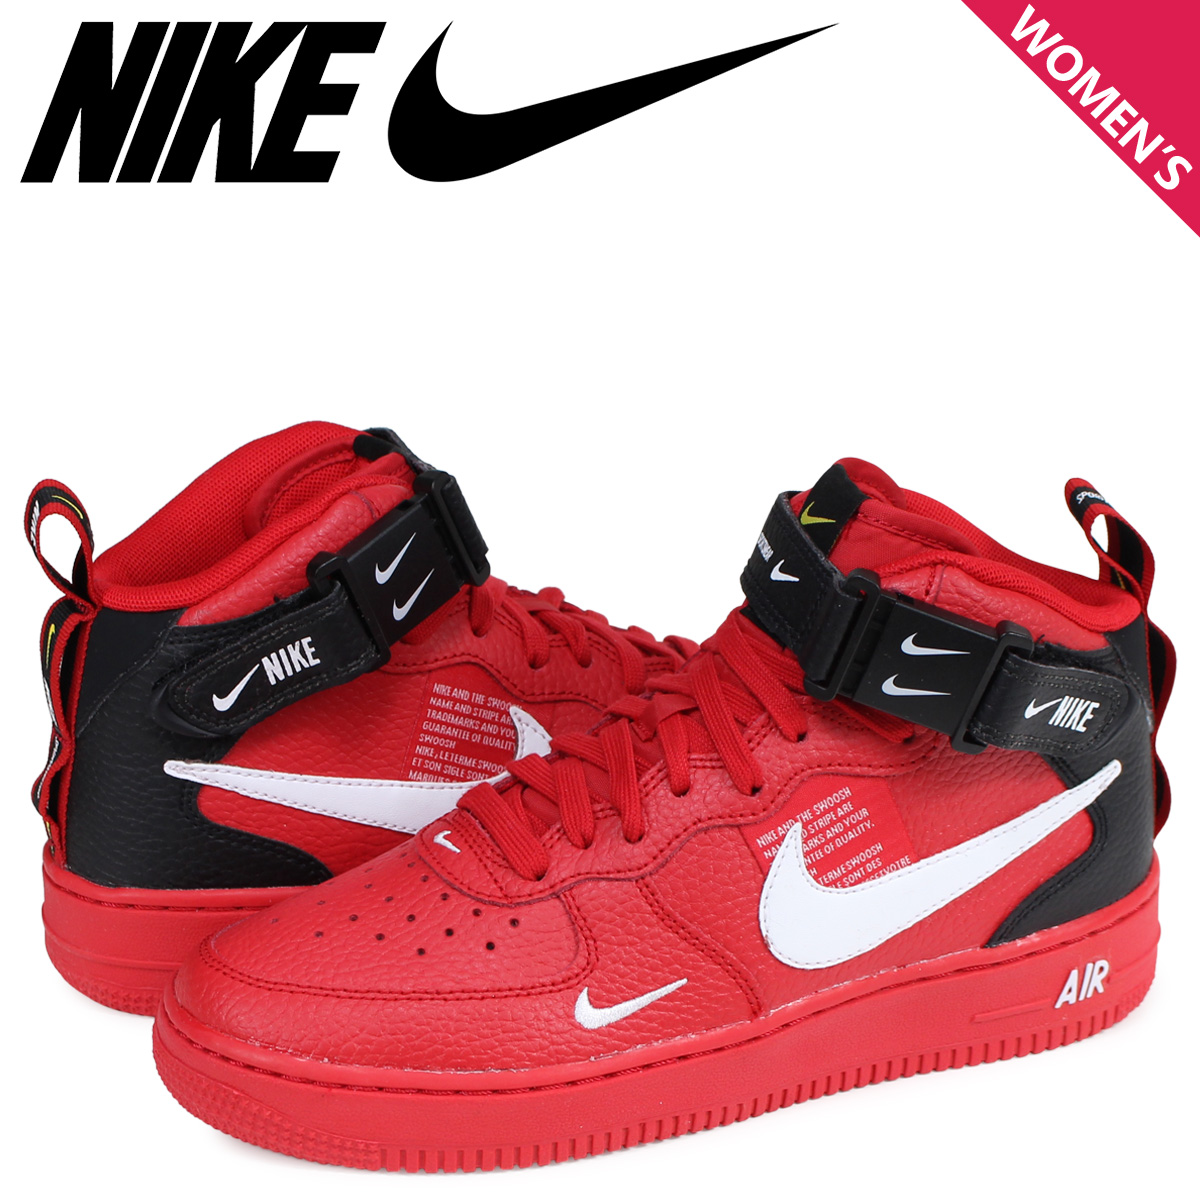 5de522eb61 NIKE AIR FORCE 1 MID LV8 GS Nike air force 1 sneakers Lady's red AV3803- ...